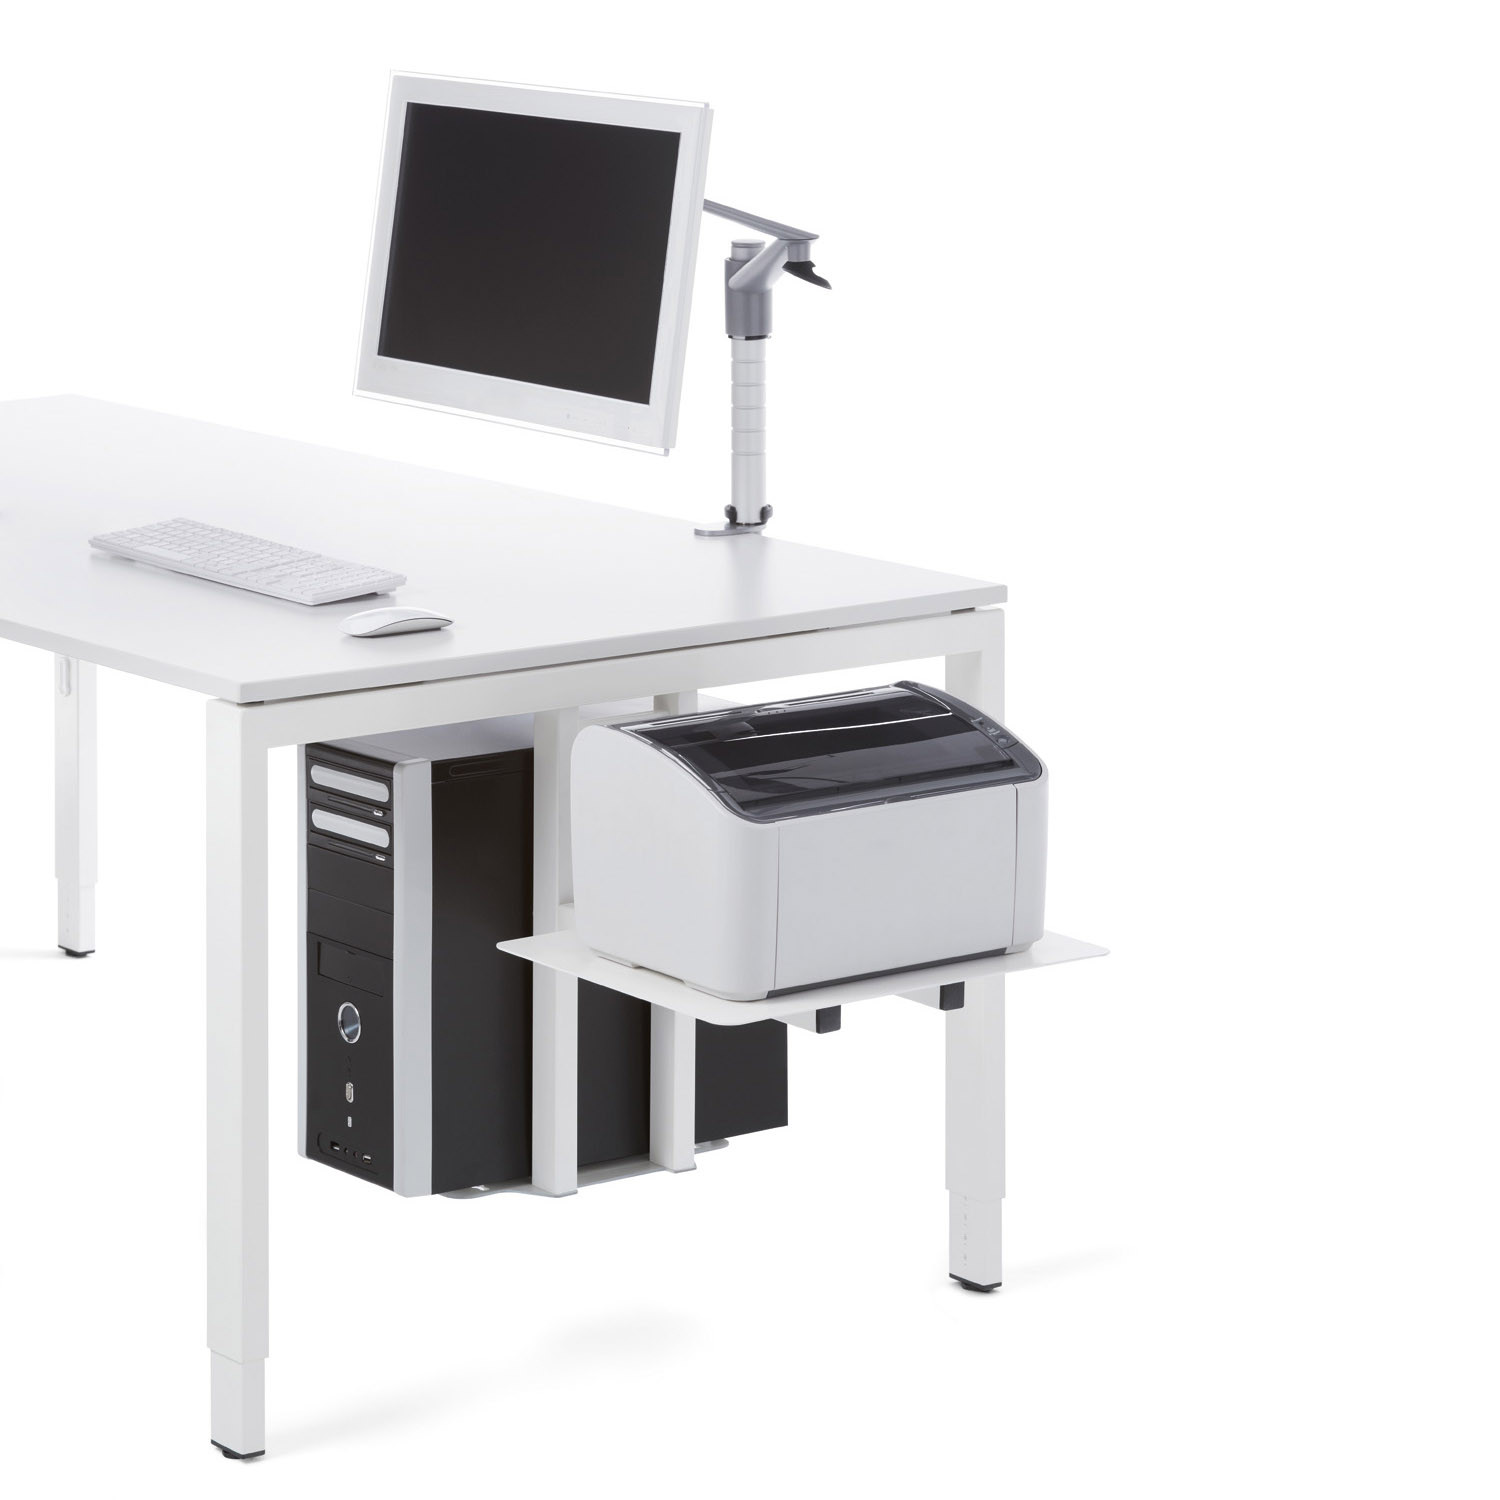 Attention Four Sedus Bench Desk